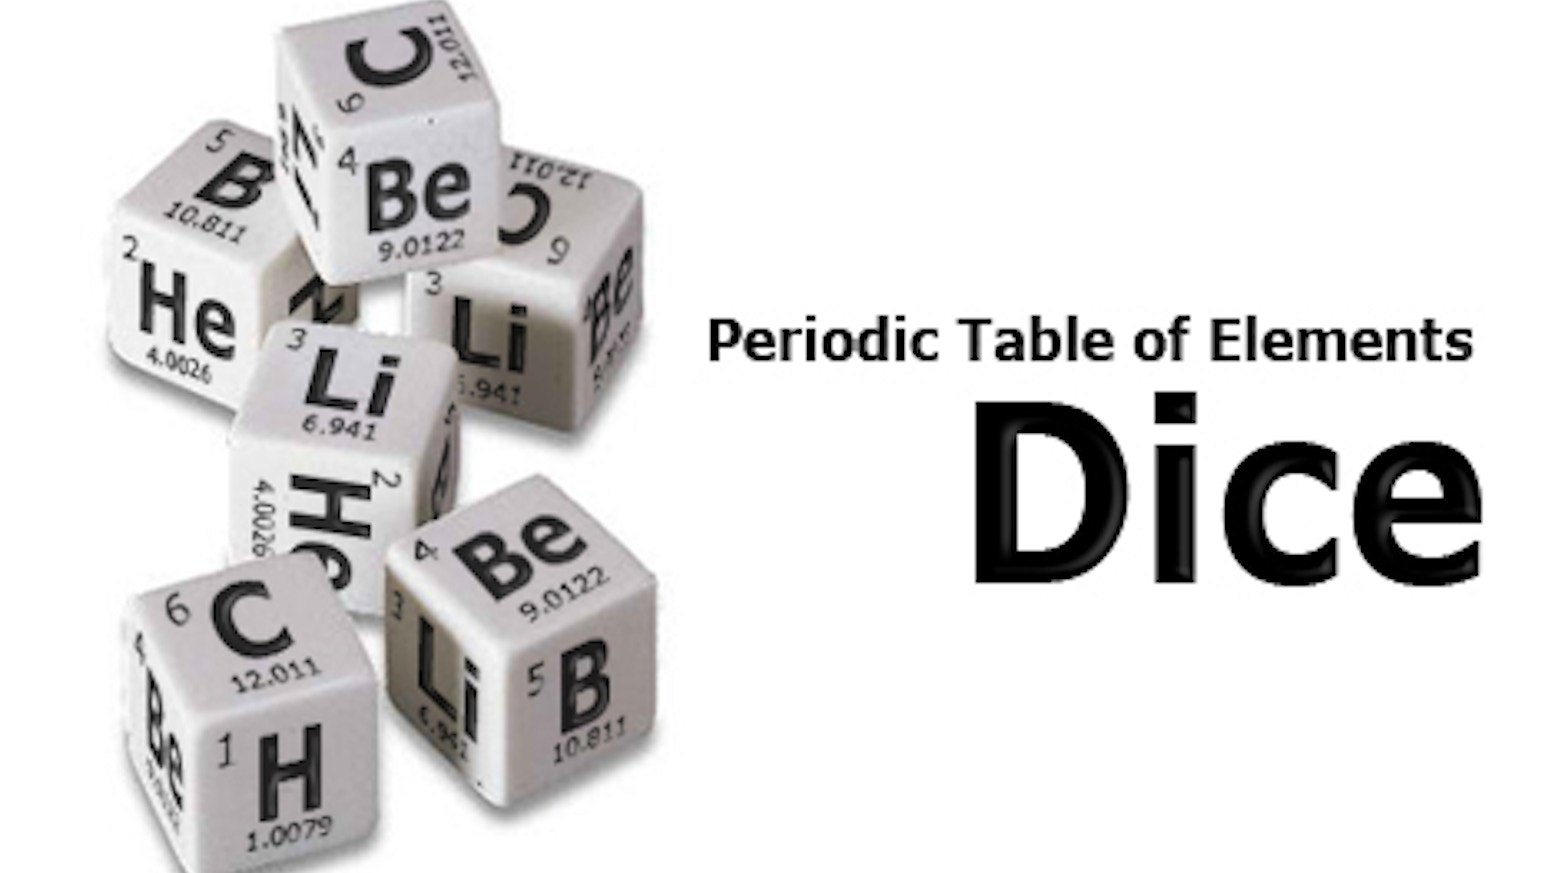 Periodictable of elements dice by andrew inaba kickstarter a fun alternative to normal dice the periodic table of elements dice encorporate the elements 1 6 h he li be b c gamestrikefo Images